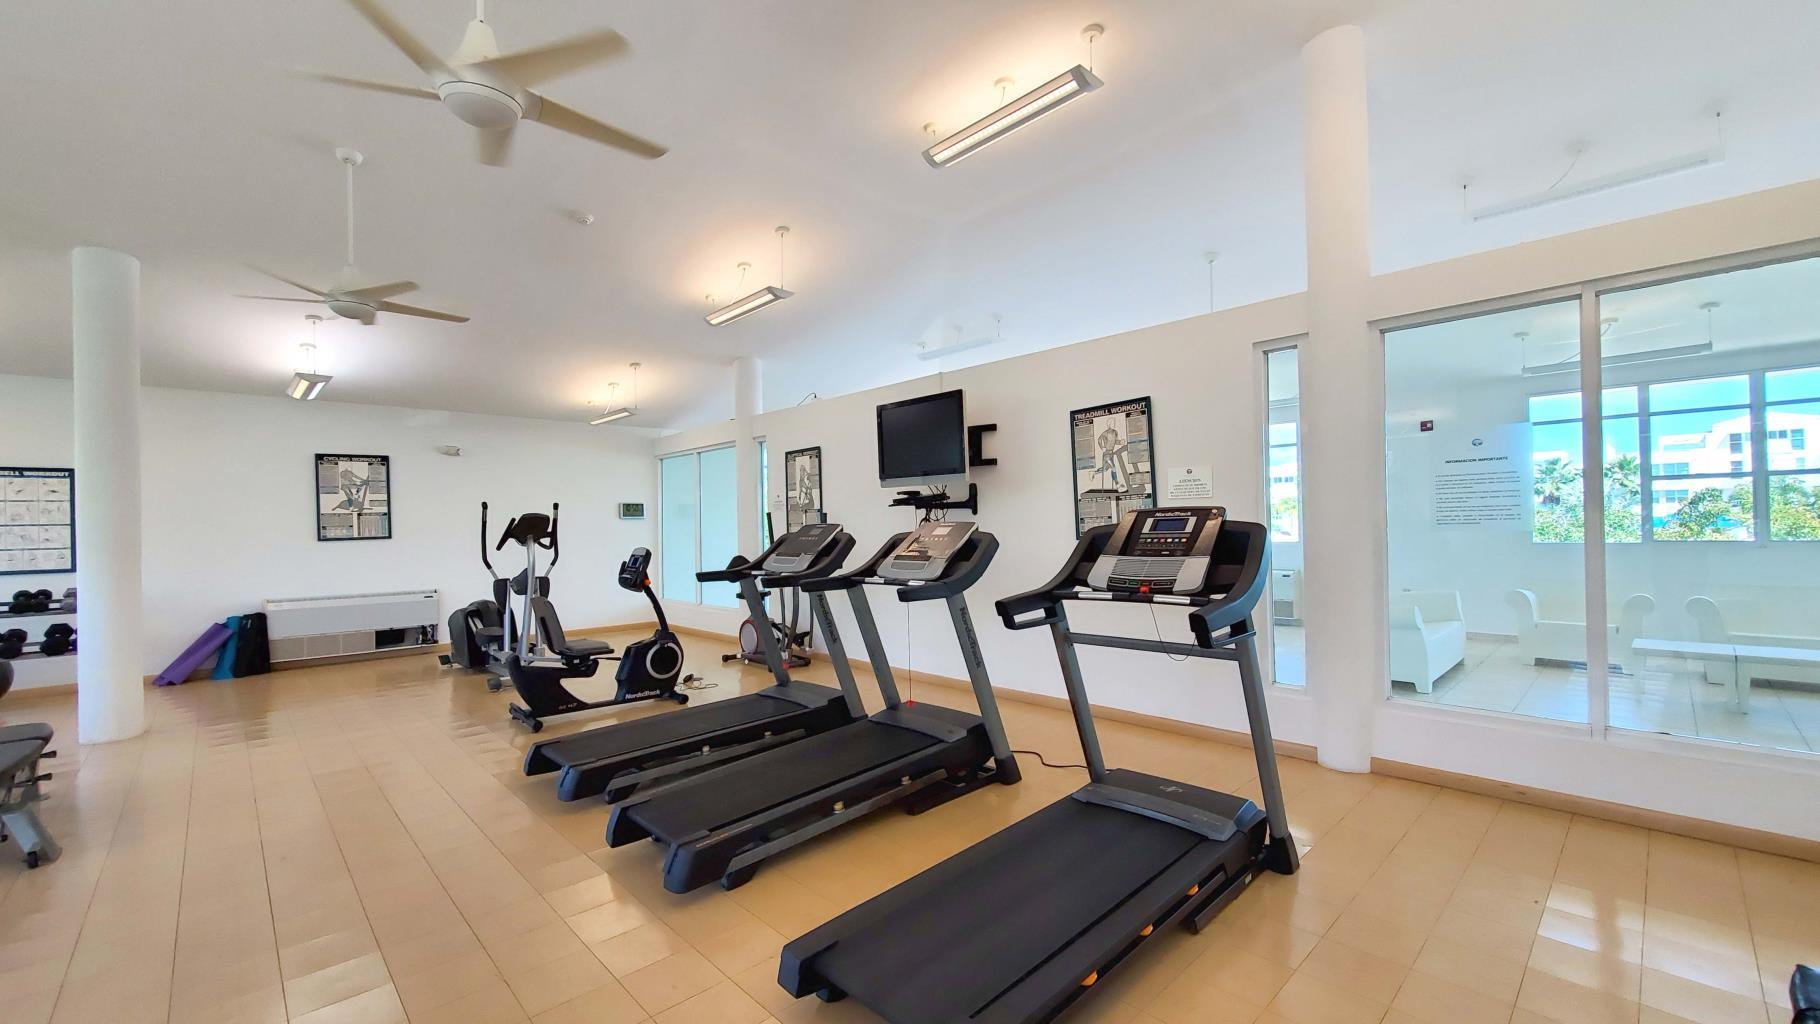 Gym and Steam rooms